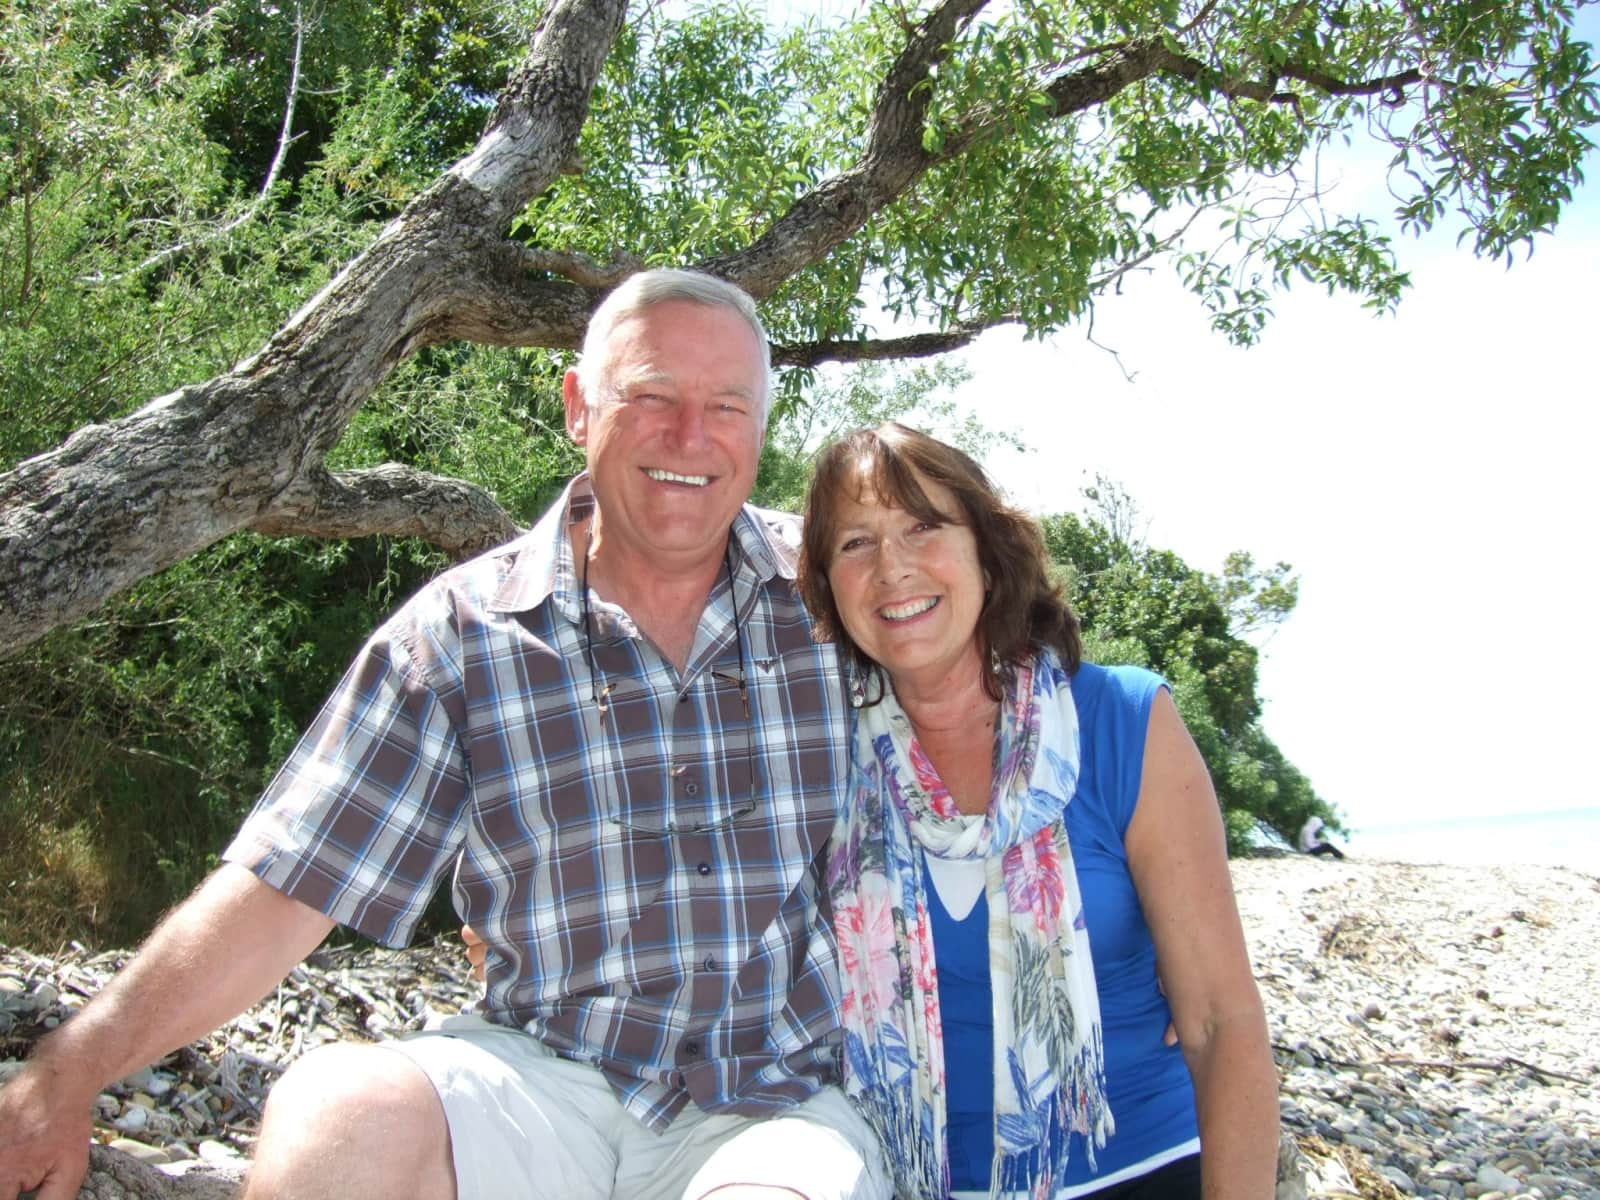 Ana & jim & Jim from Nelson, New Zealand